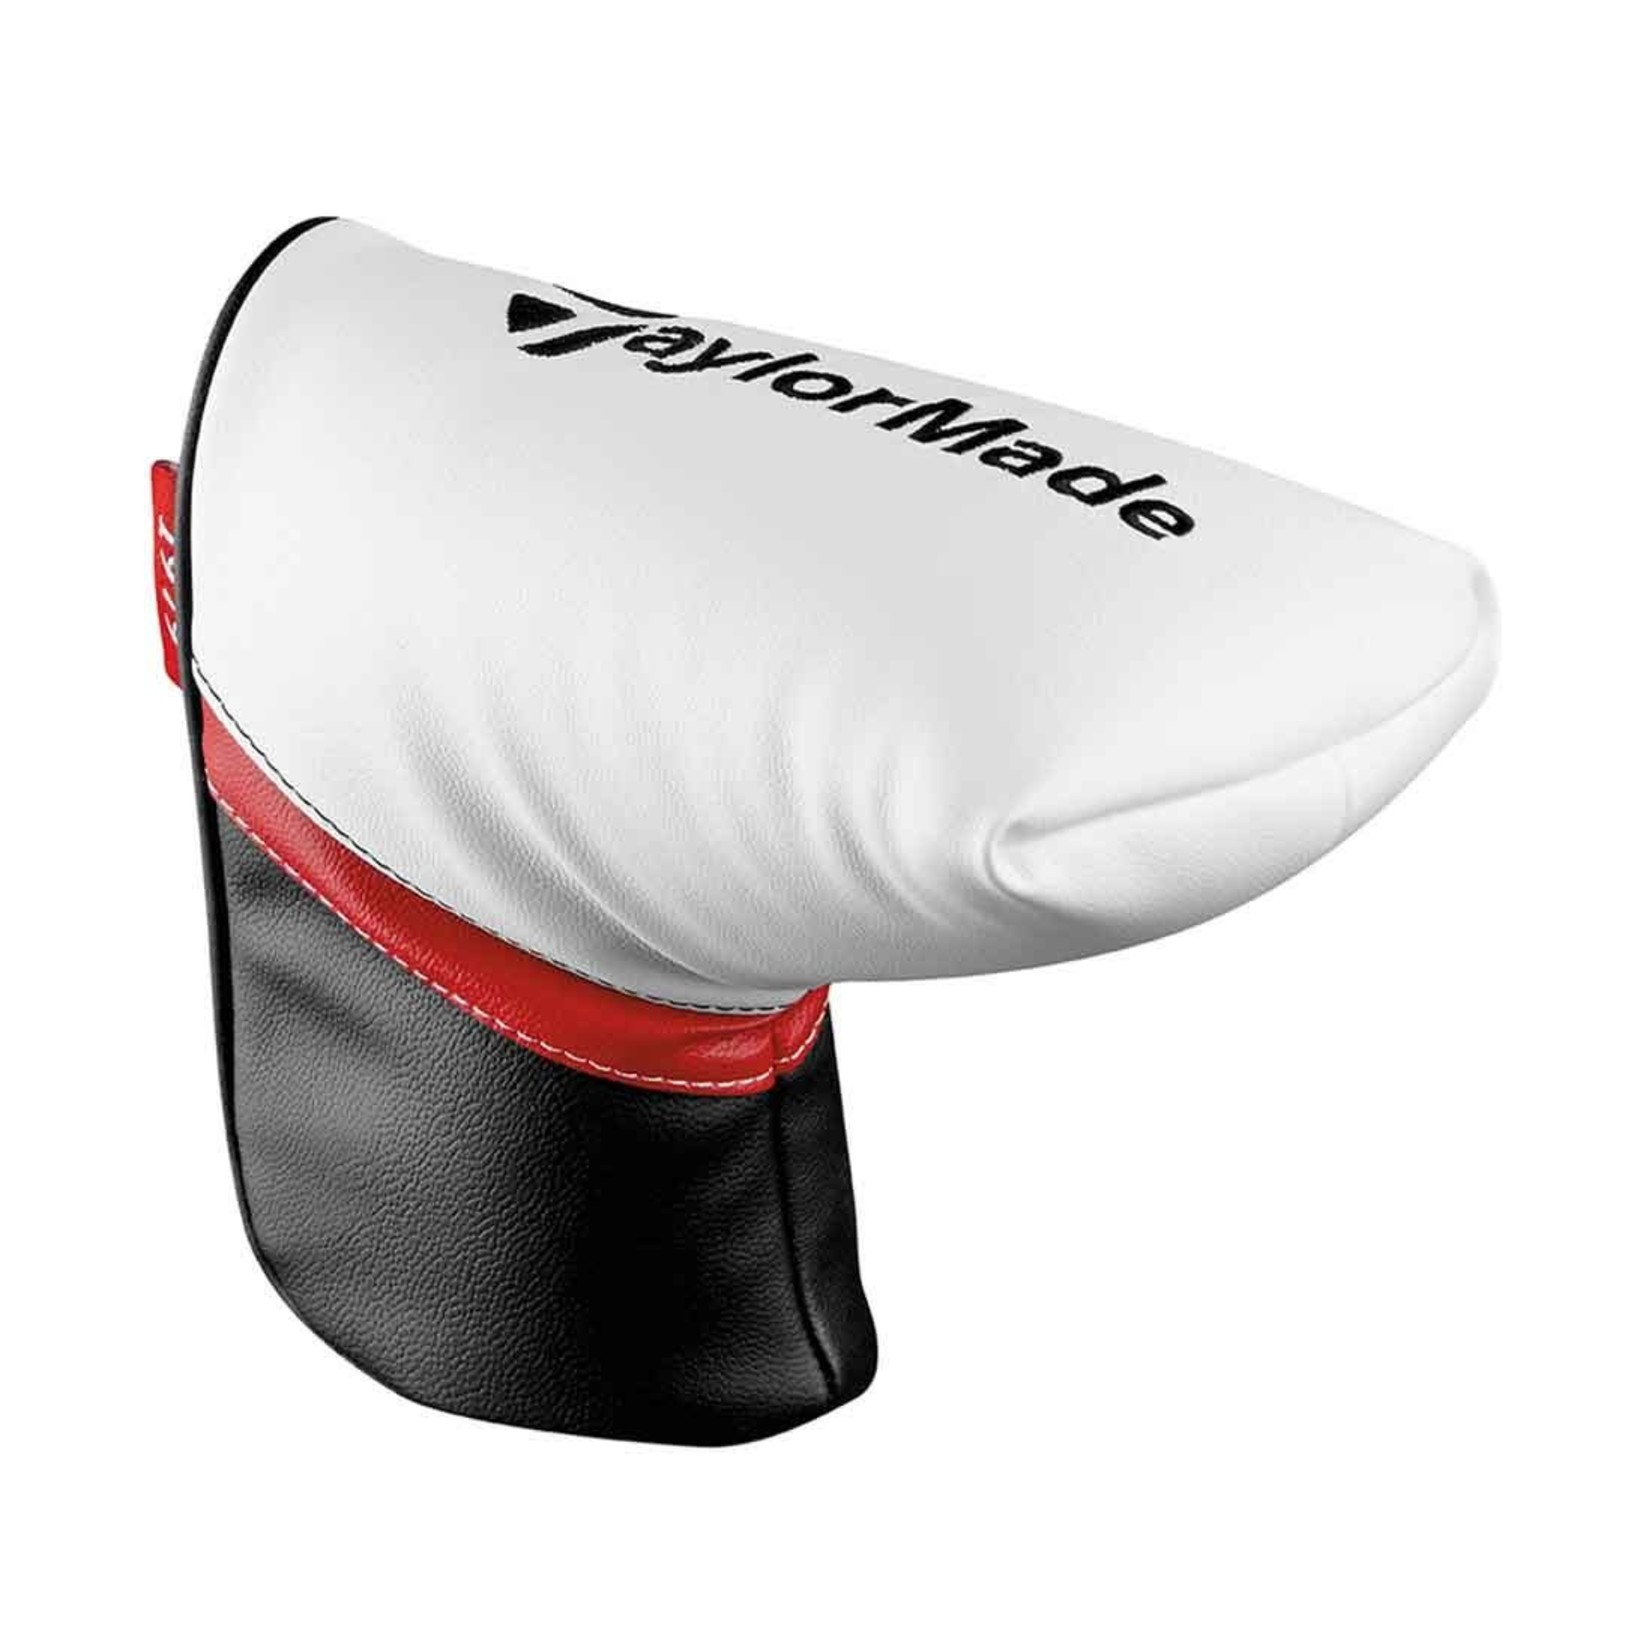 TAYLORMADE TAYLORMADE PUTTER COVER